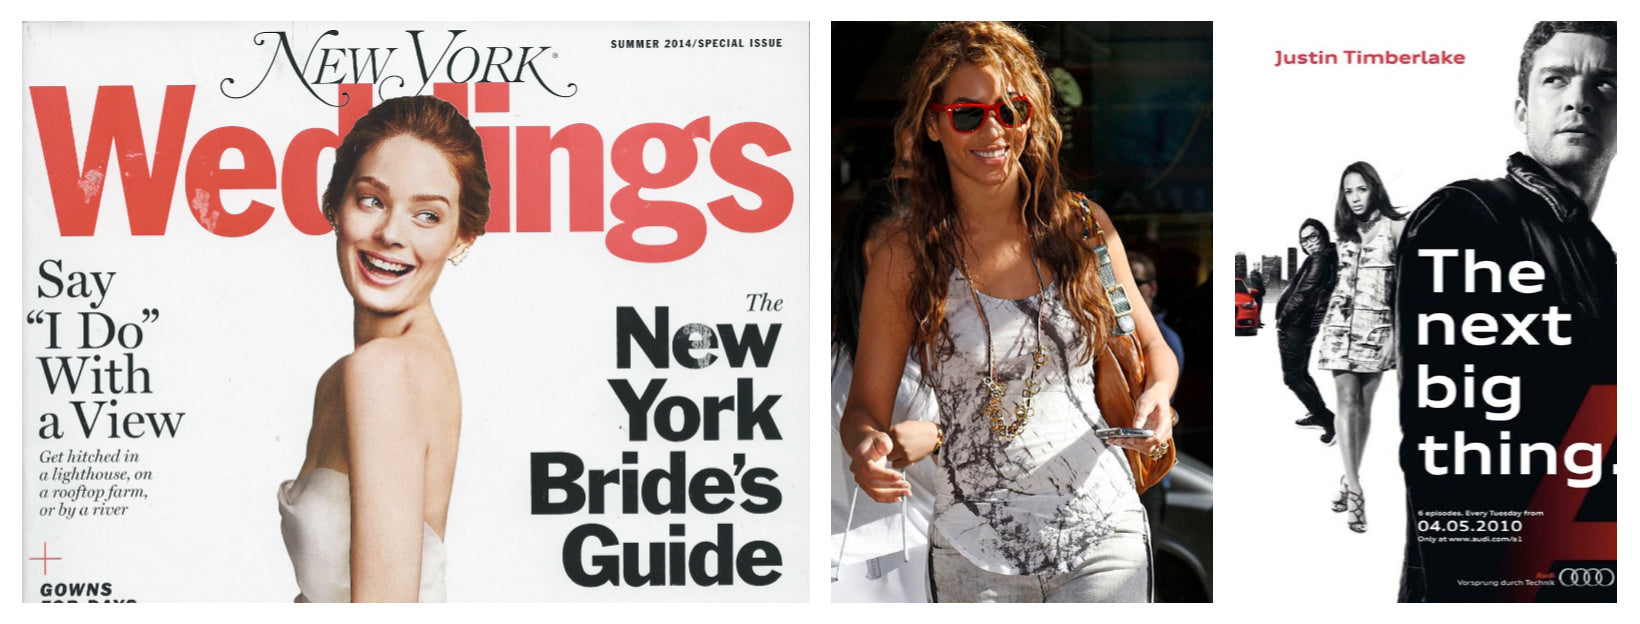 Dana Walden Jewelry worn by Beyonce, featured in commercials and magazines